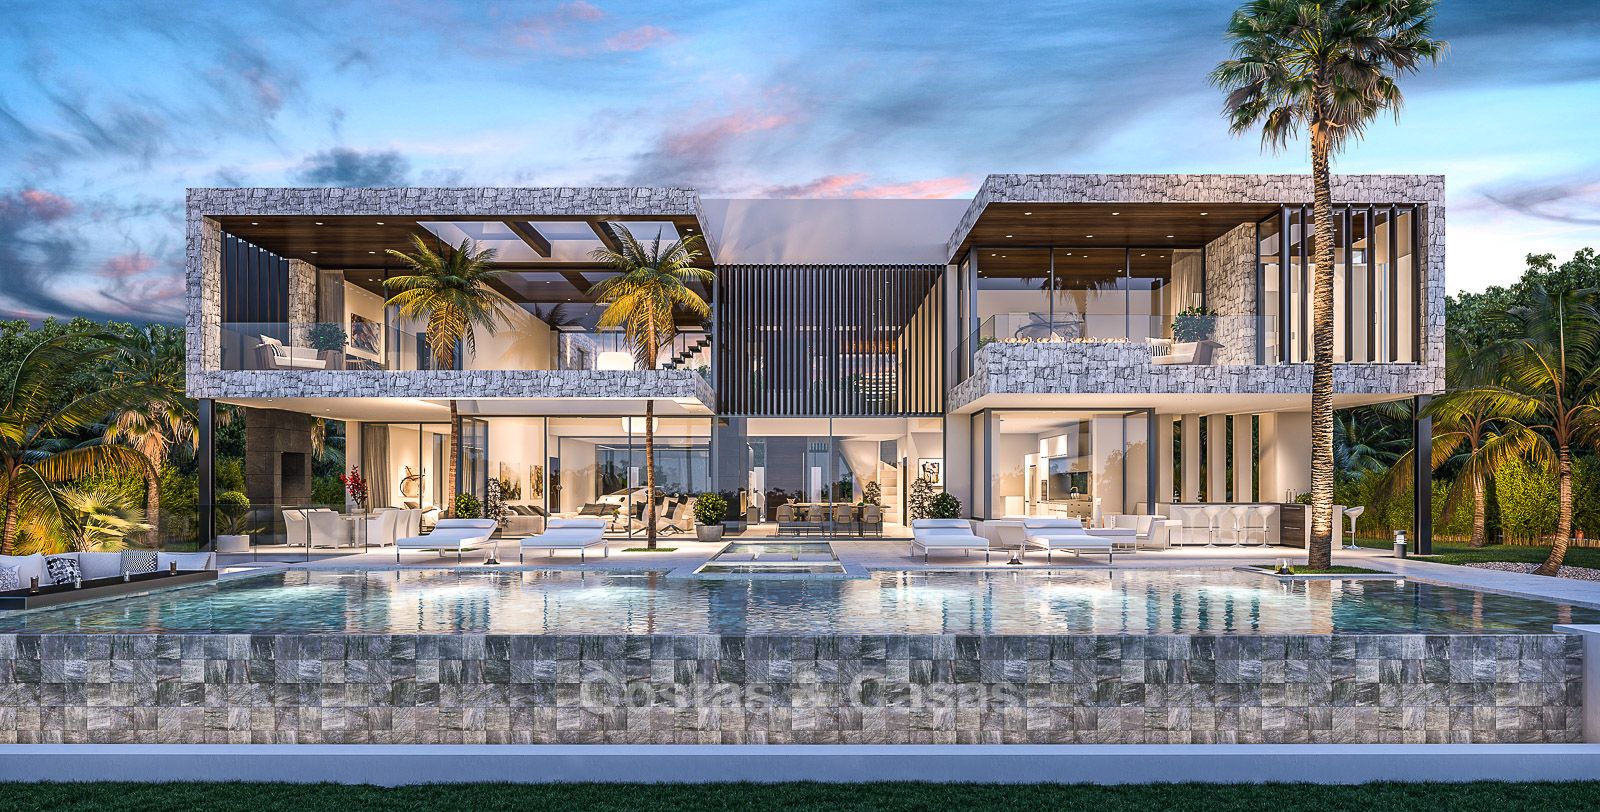 luxury modern villa for sale located on a golf course. Black Bedroom Furniture Sets. Home Design Ideas